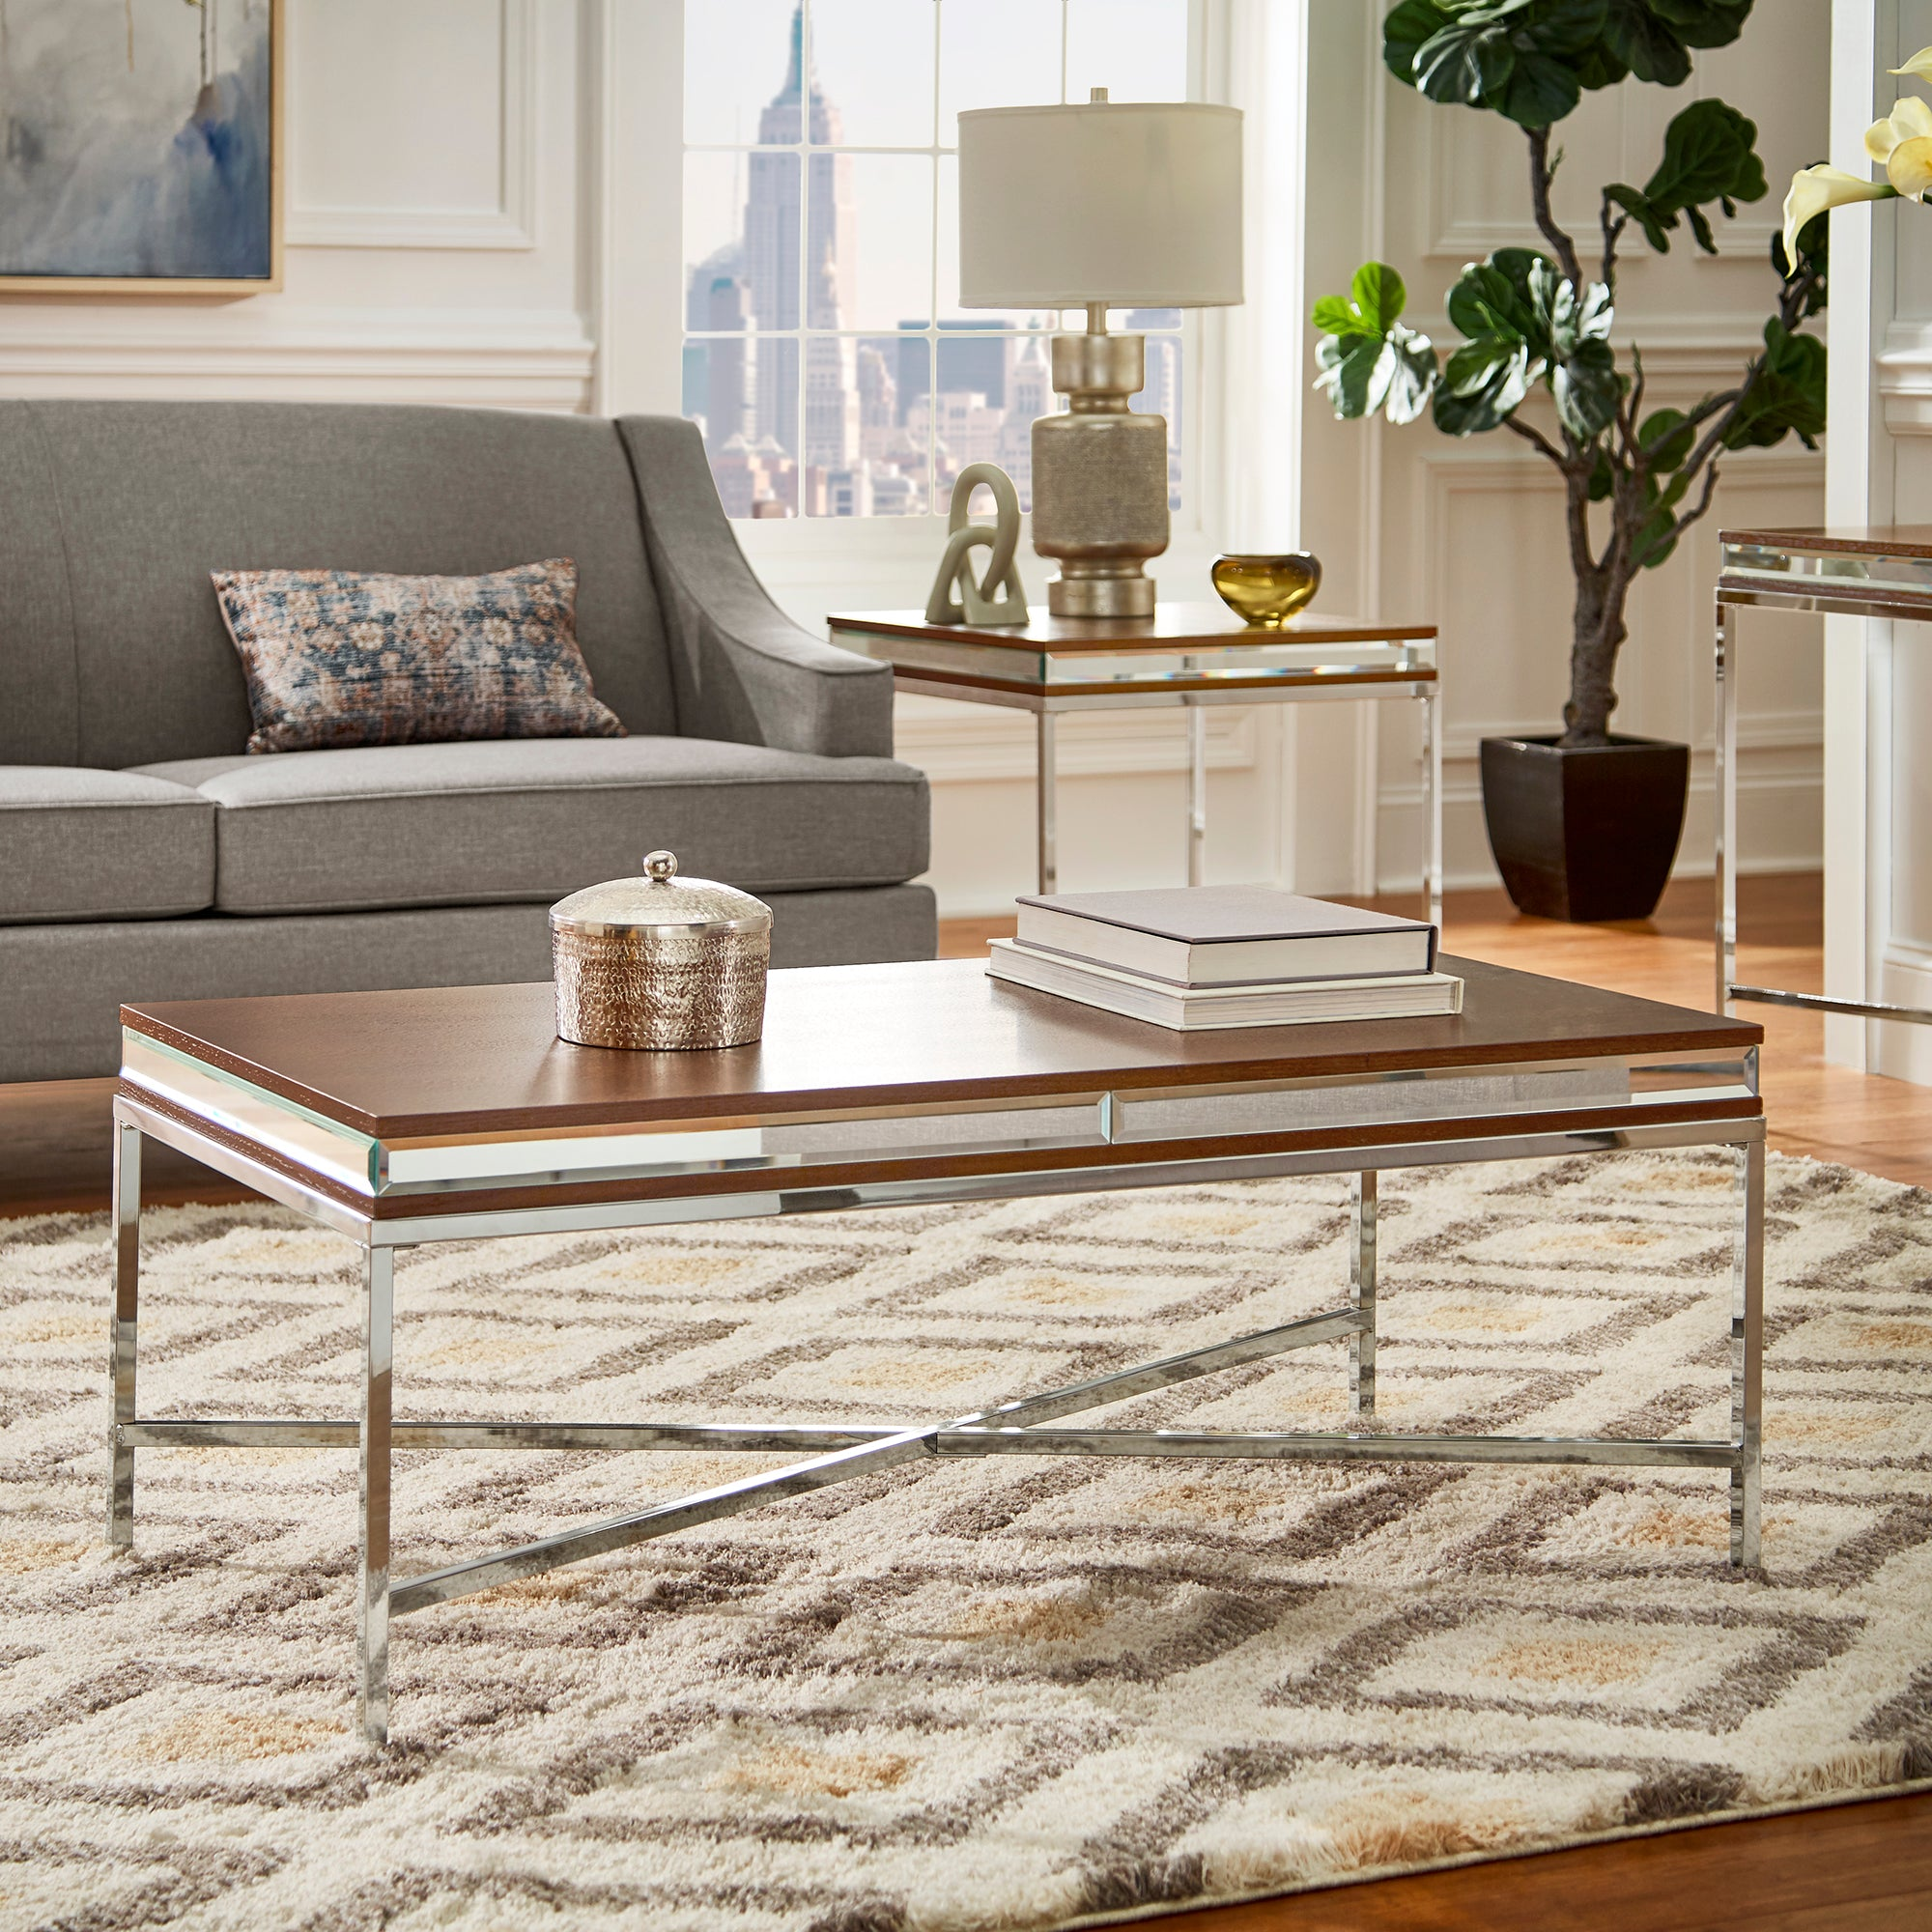 Mirror Trim Coffee Table - Chrome